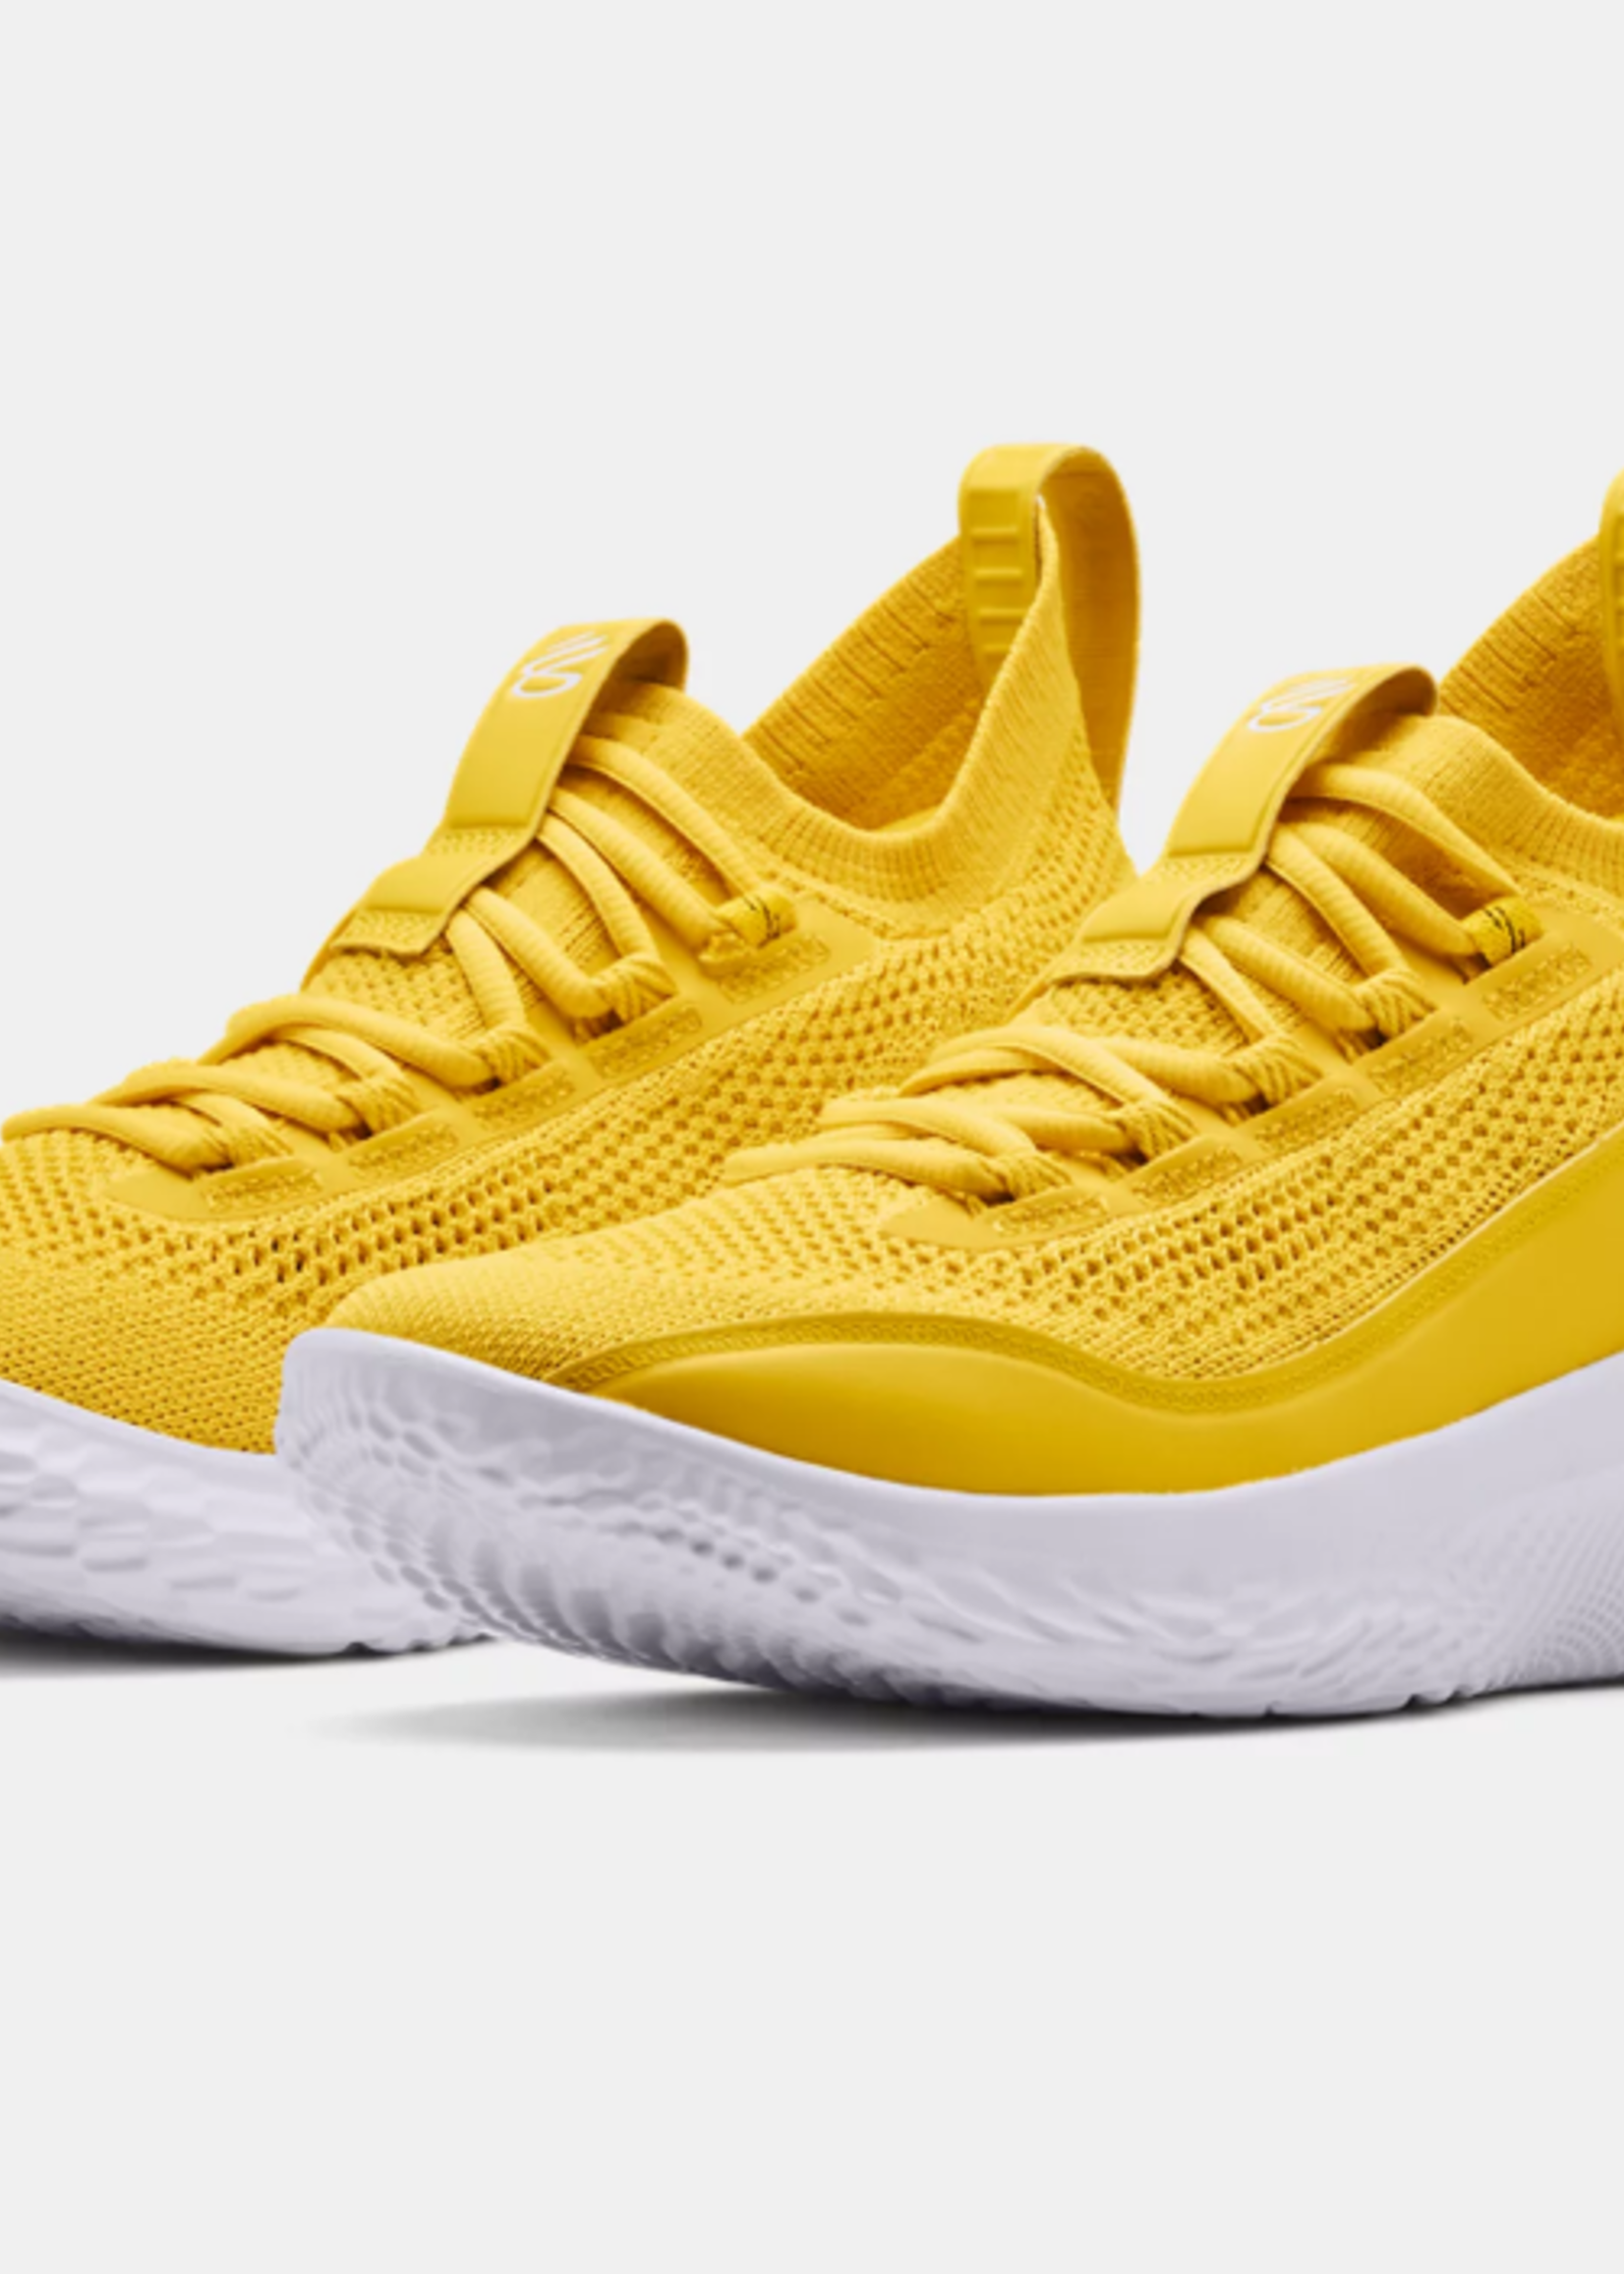 Under Armour CURRY FLOW 8 BASKETBALL SHOES 3023085